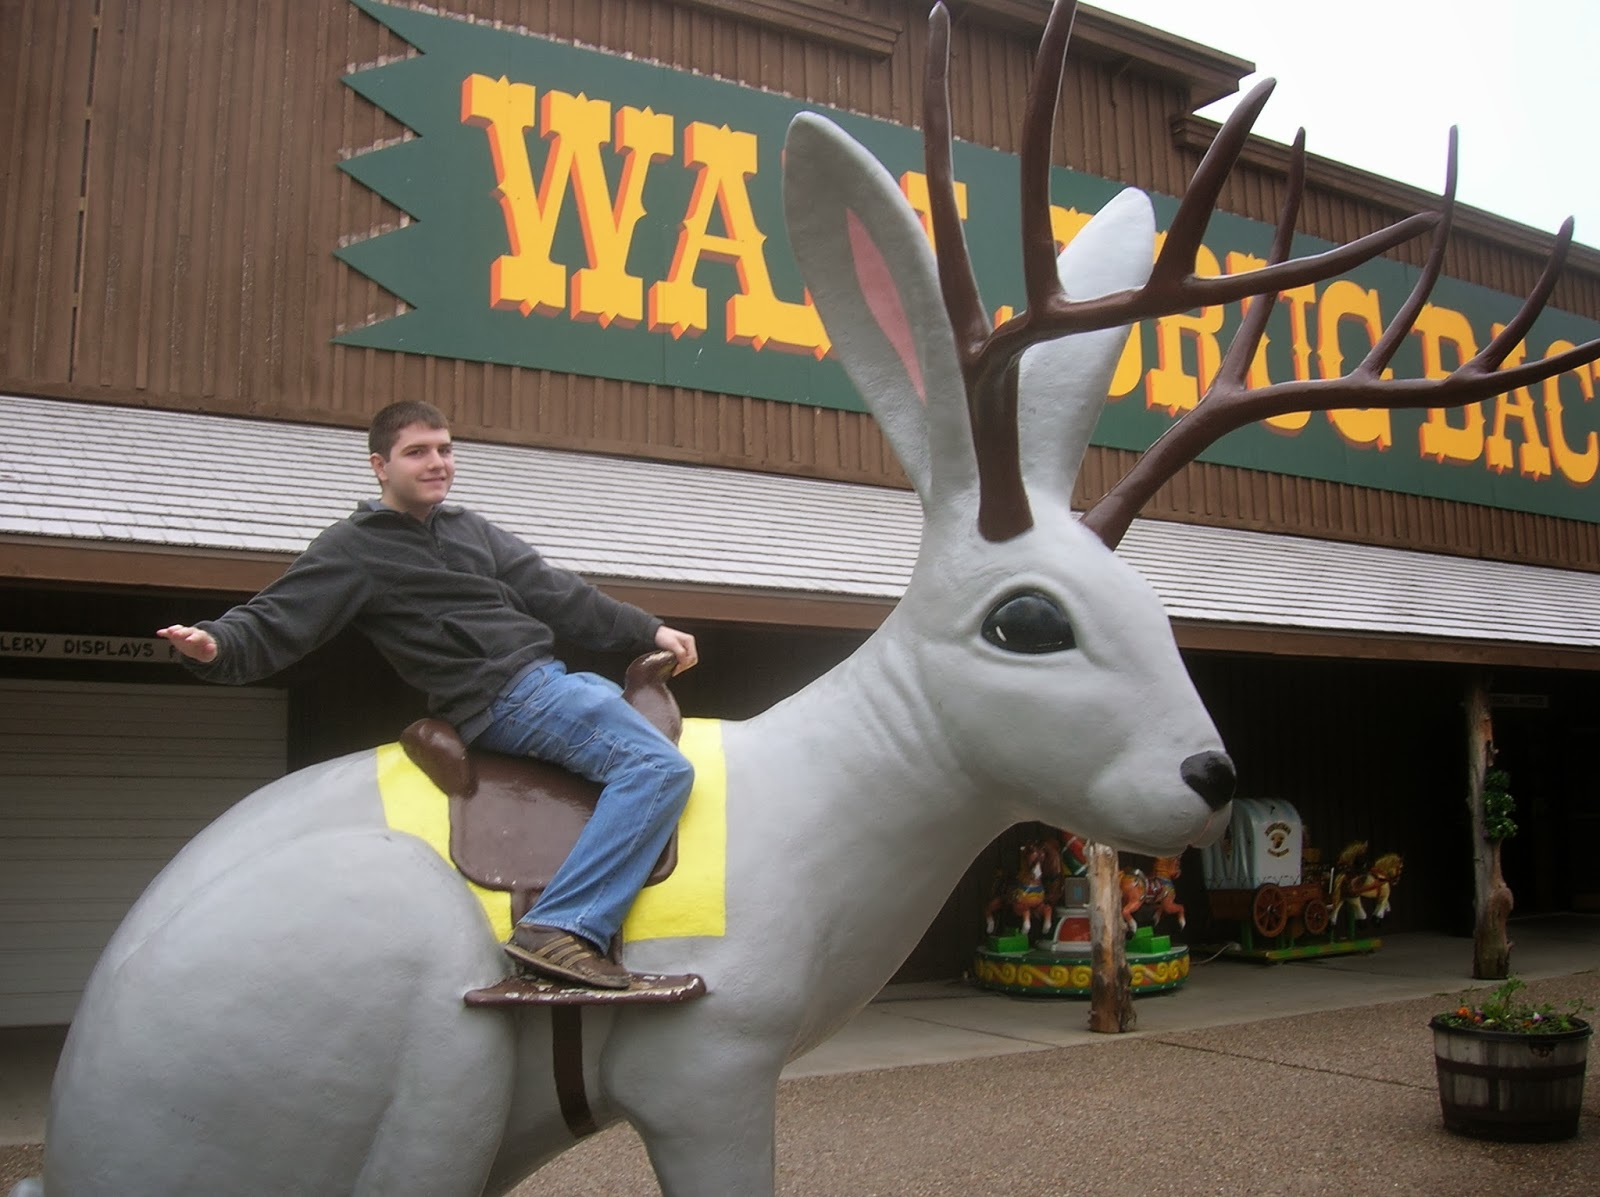 man riding a jackalope at wall drug